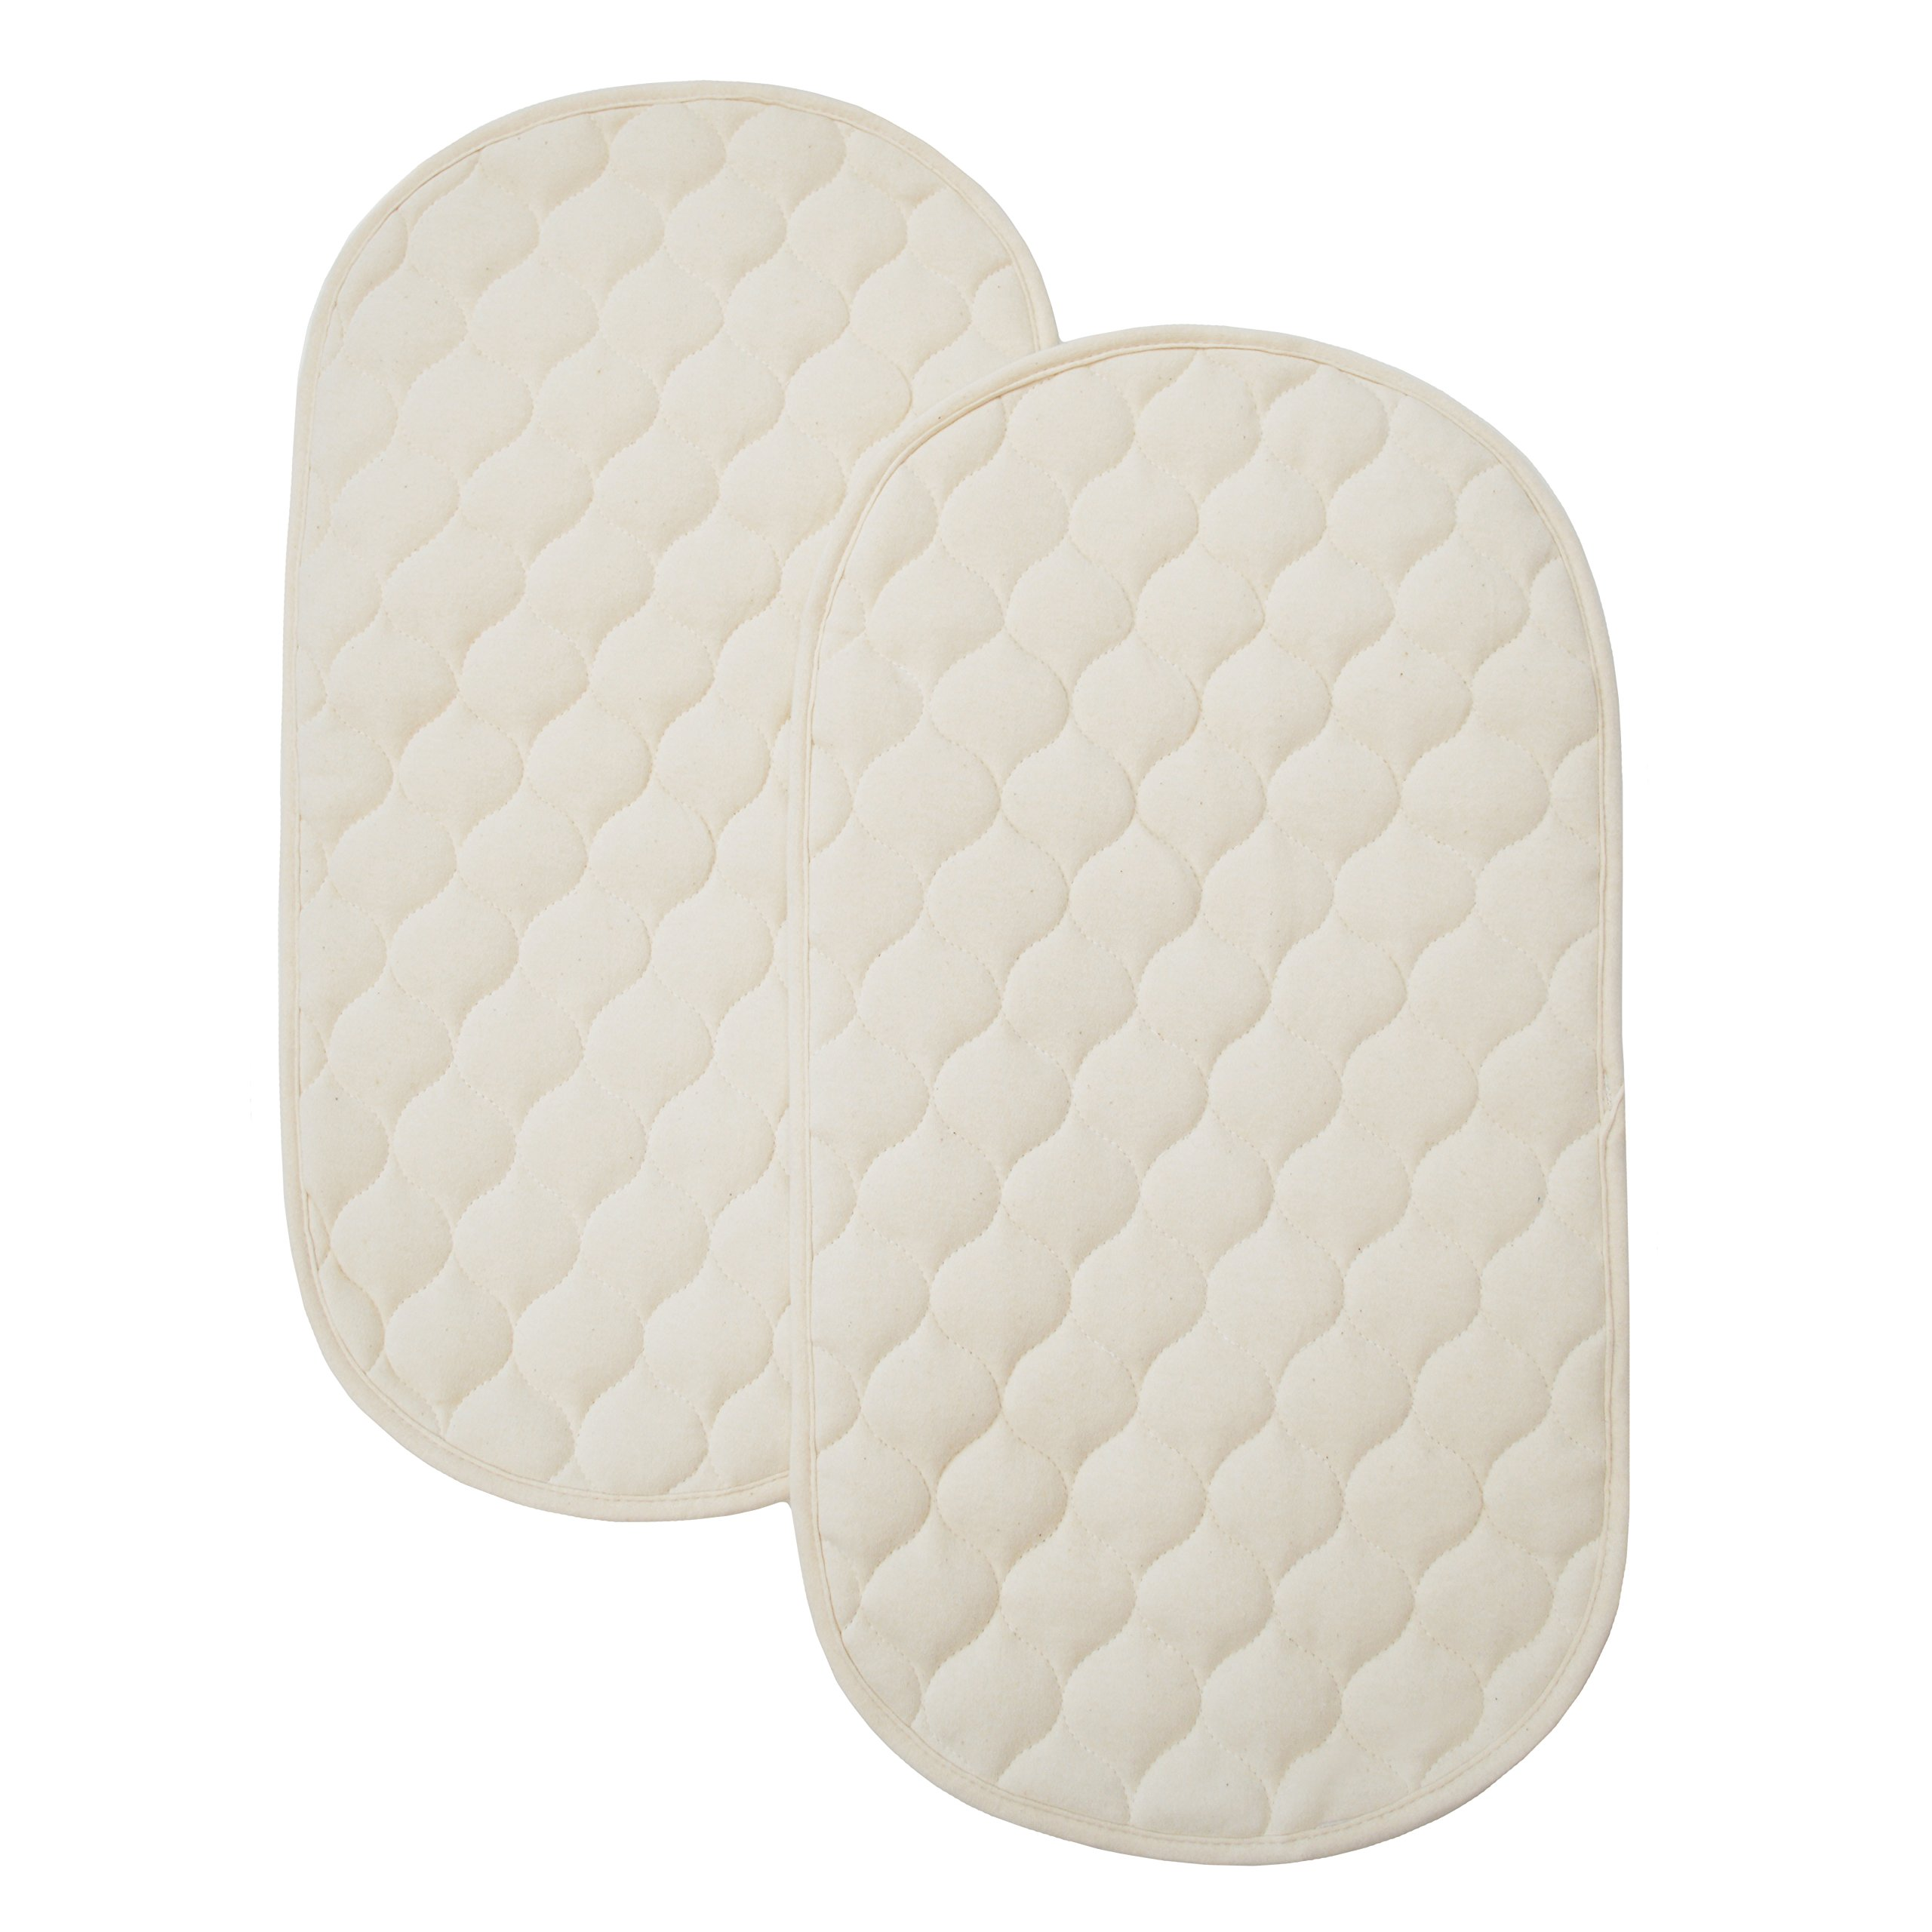 American Baby Company Natural Waterproof Quilted Playard 2 Pack Changing Table Pads Made with Organic Cotton - Vinyl Free